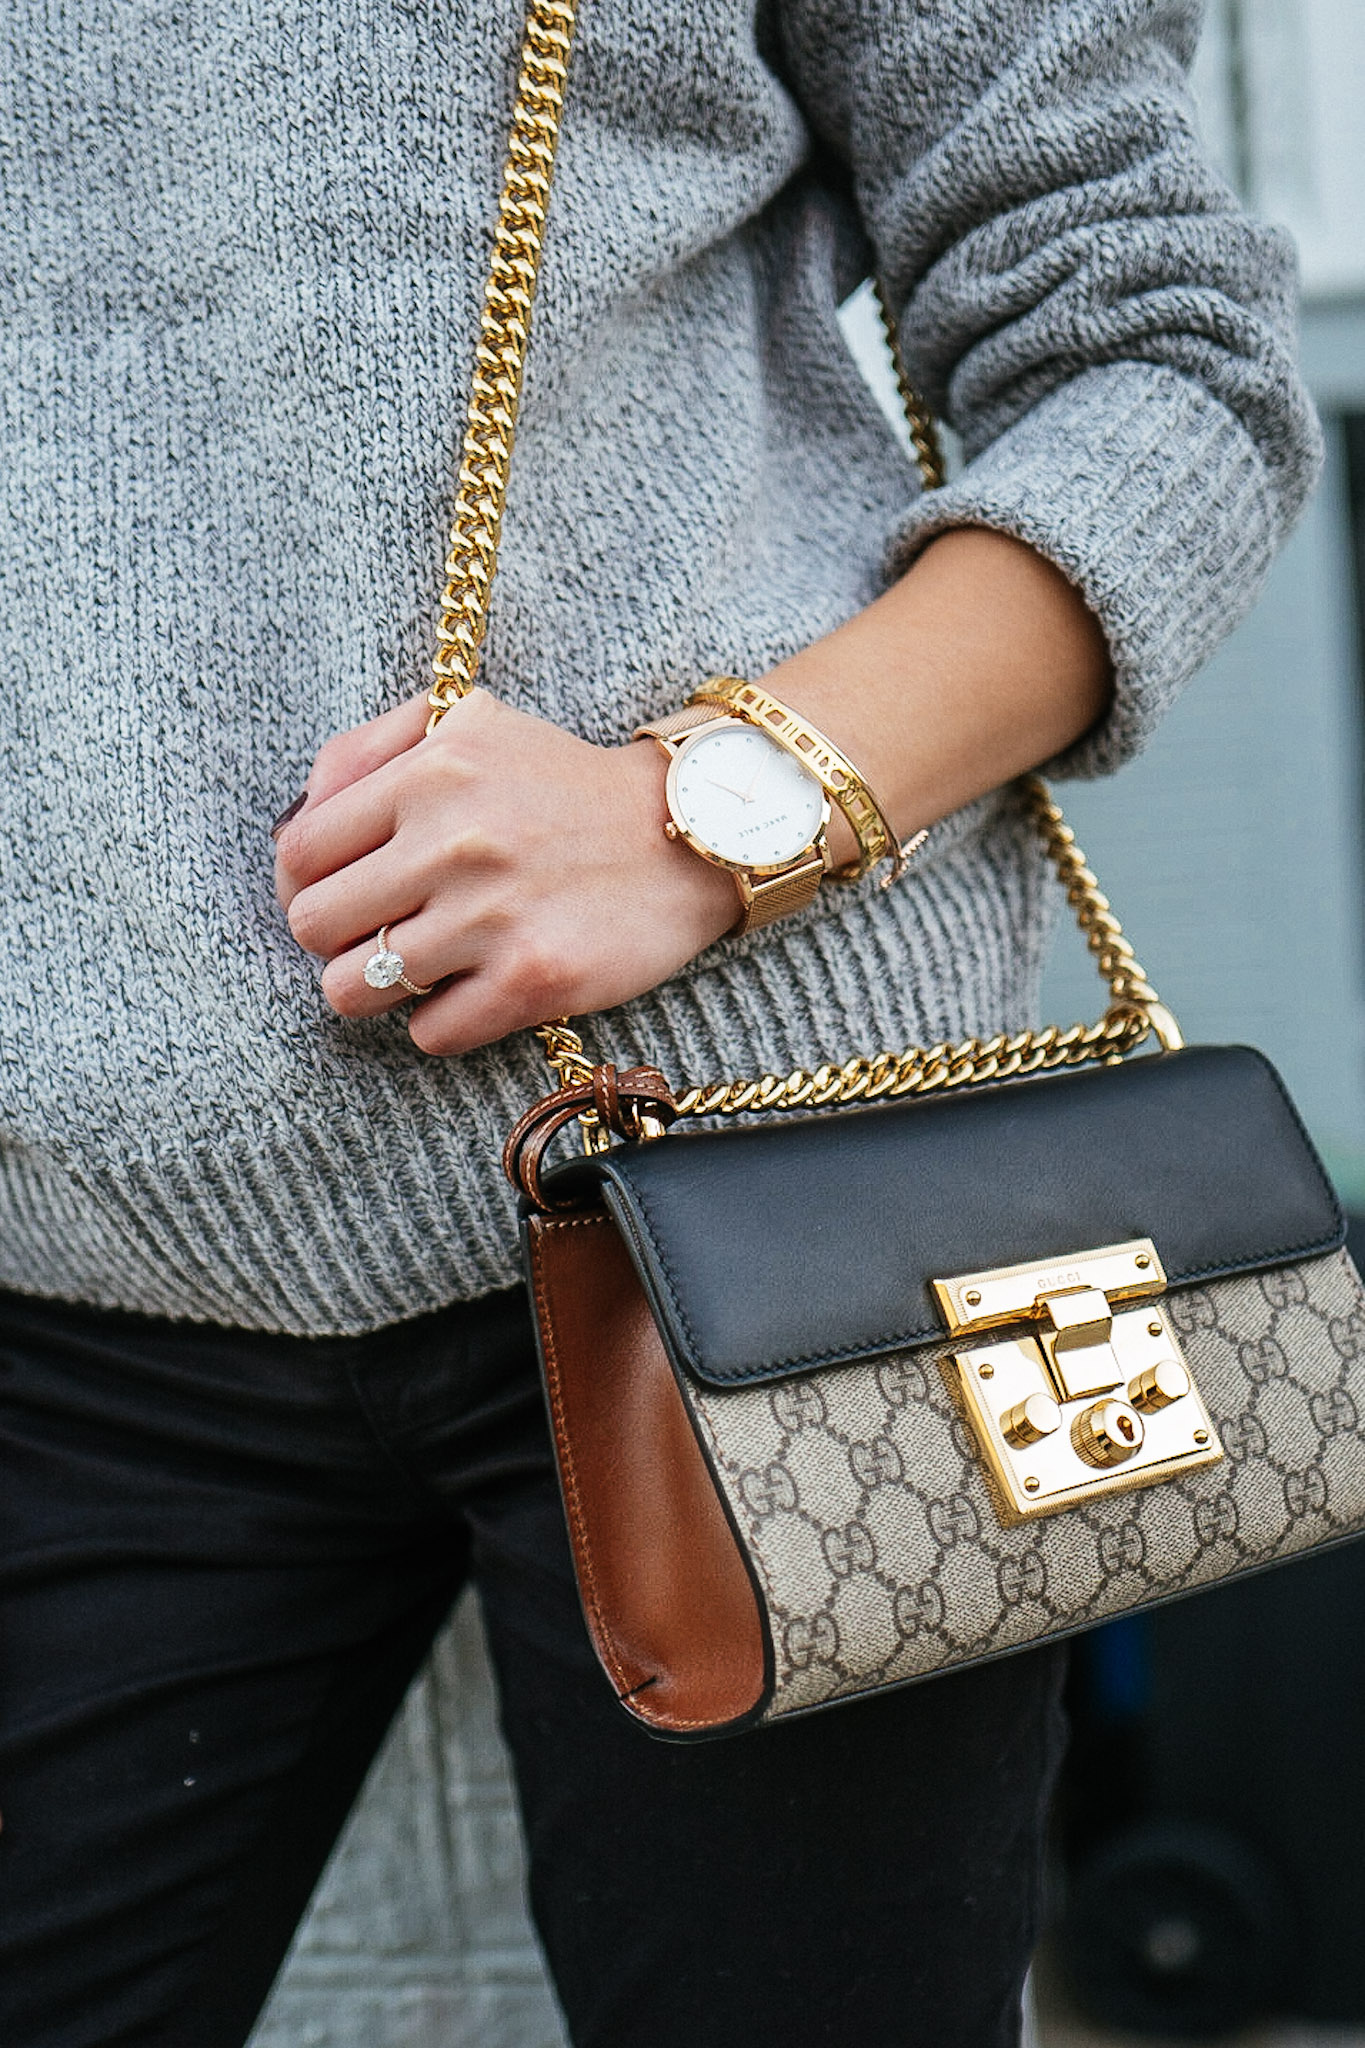 A SWEATER THAT FITS JUST RIGHT – TREND ENVY